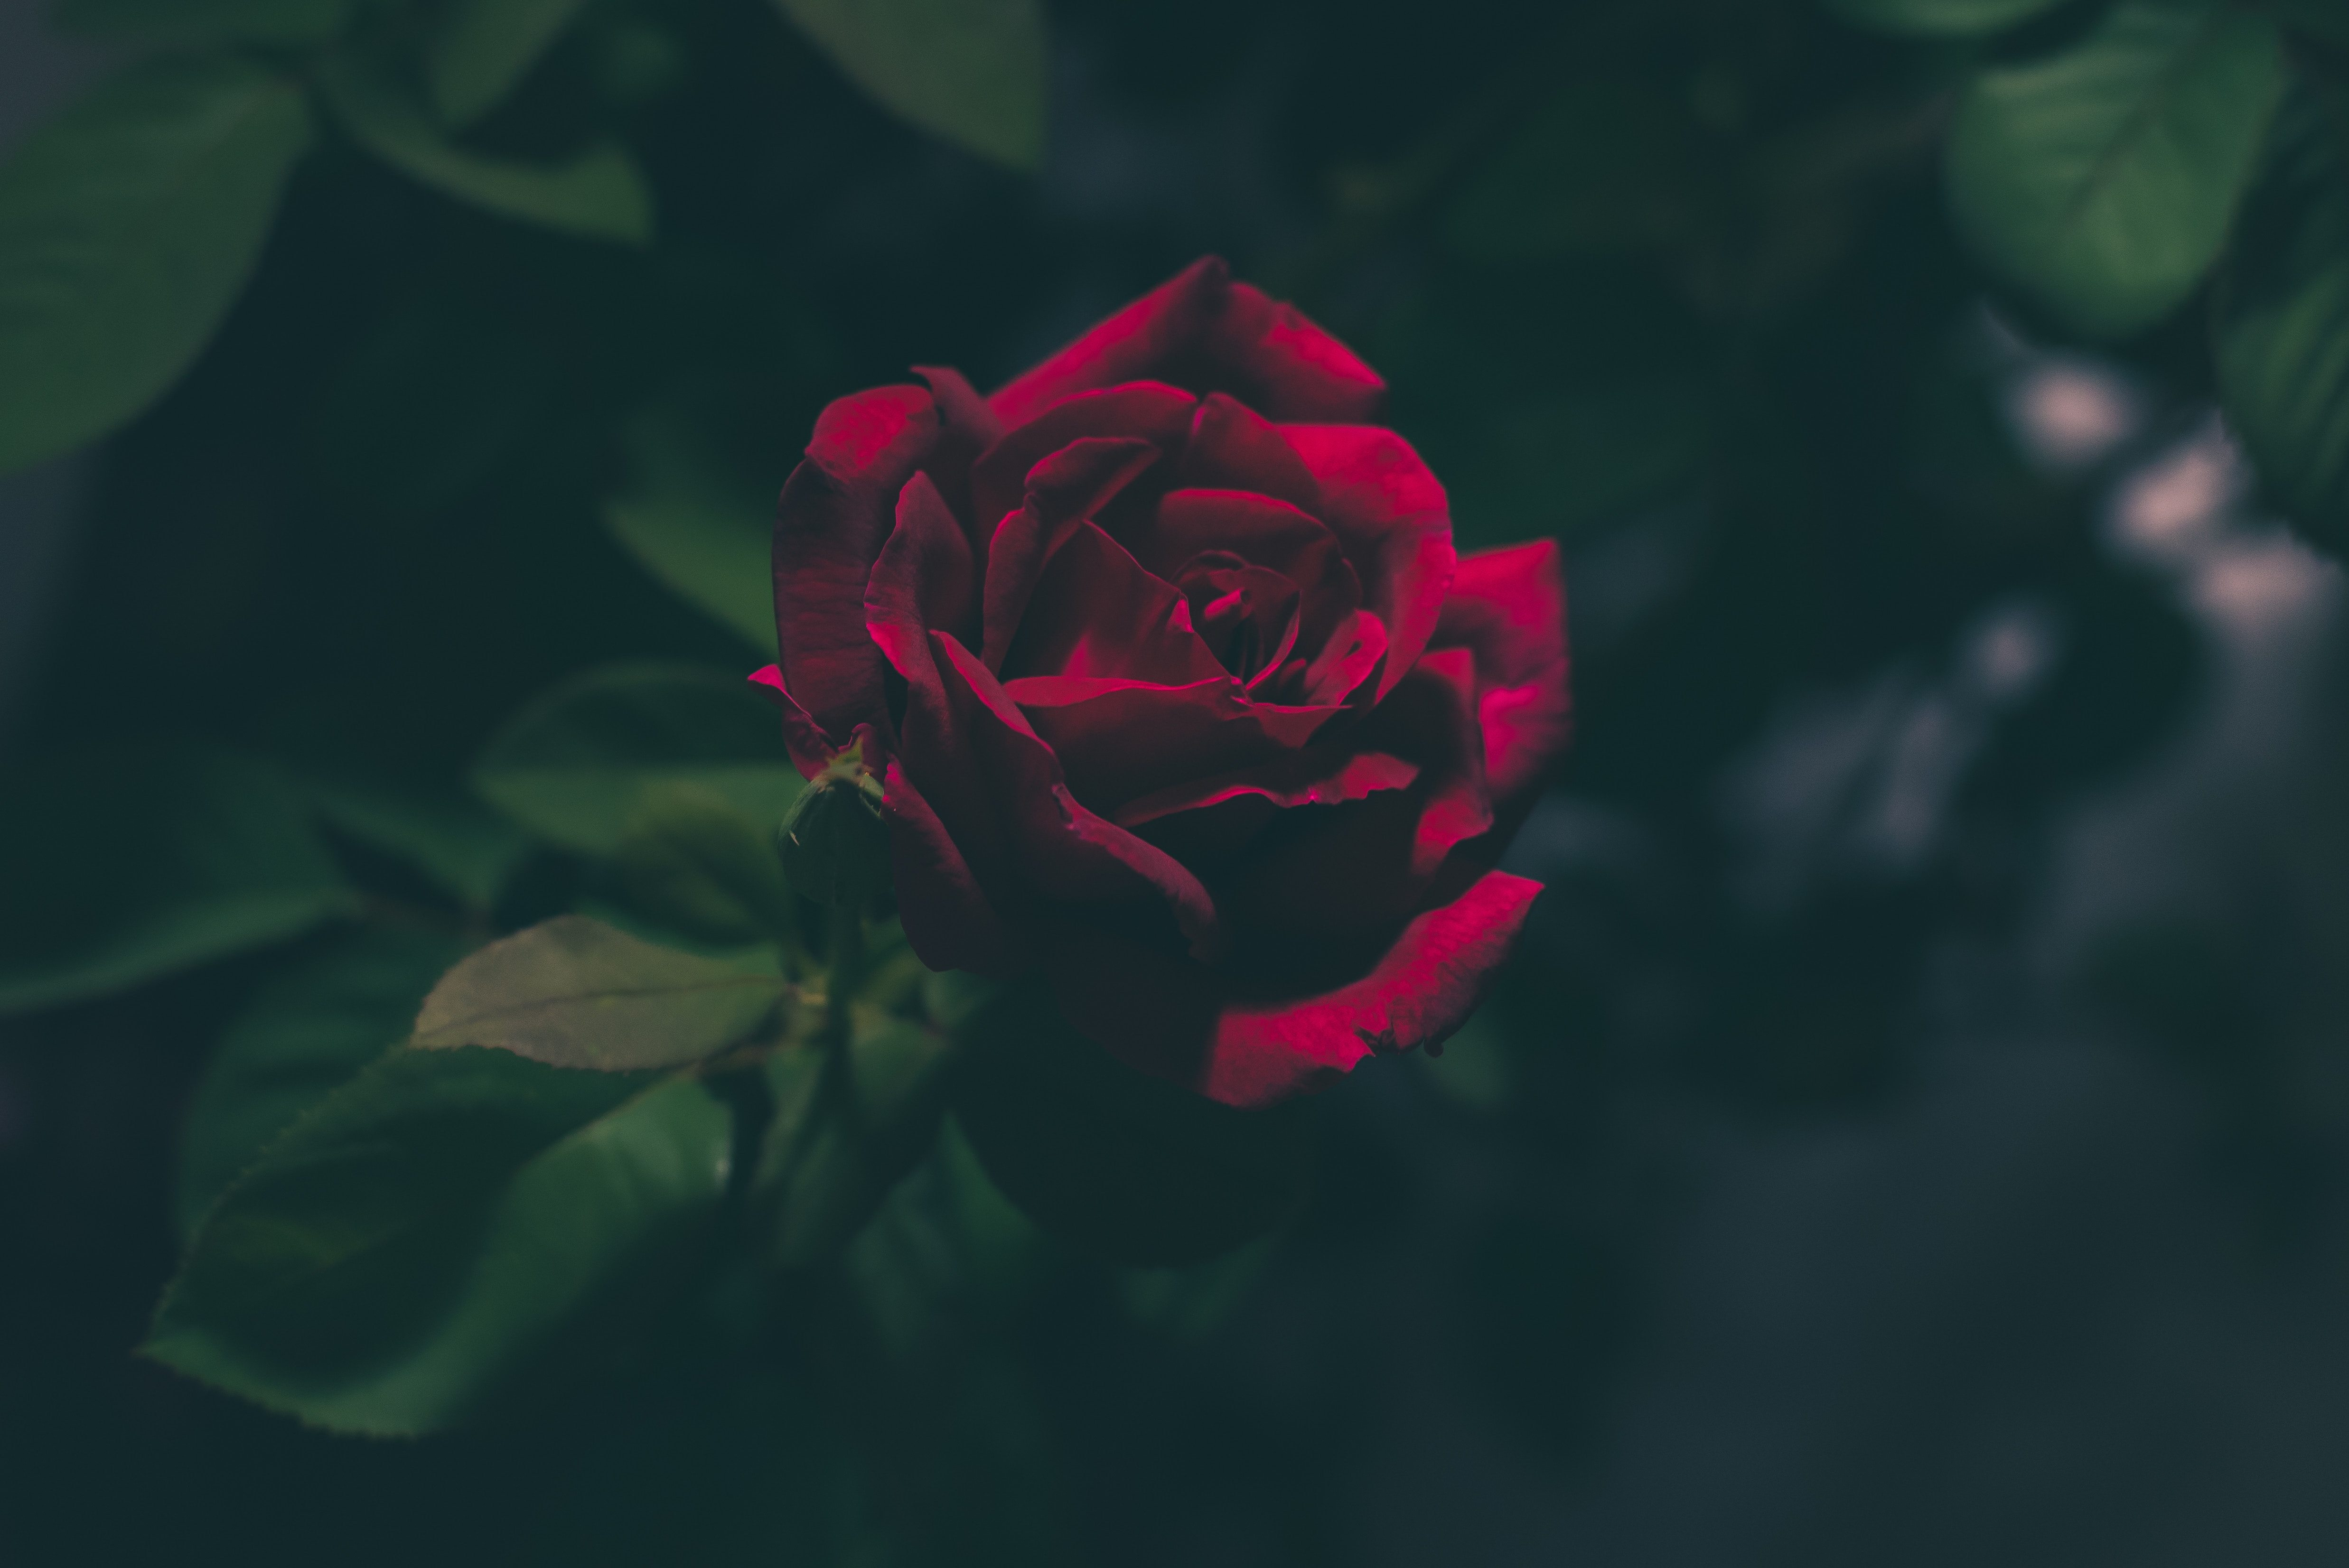 Blood red rose iphone wallpaper idrop news - Black and red rose wallpaper ...